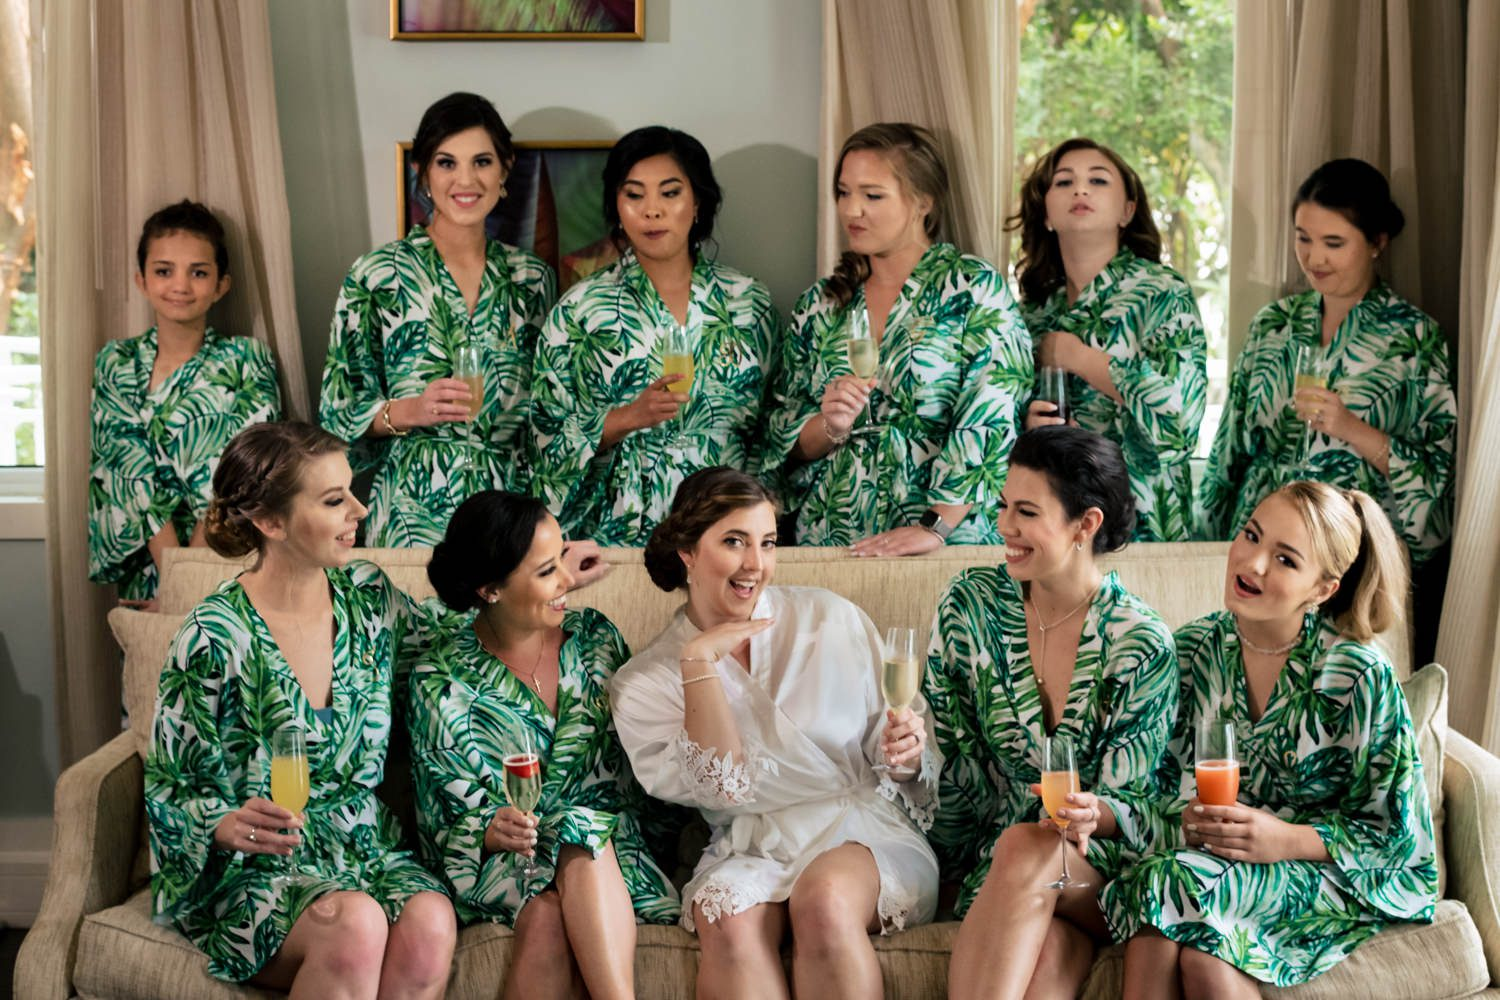 Bridesmaids sitting and smiling